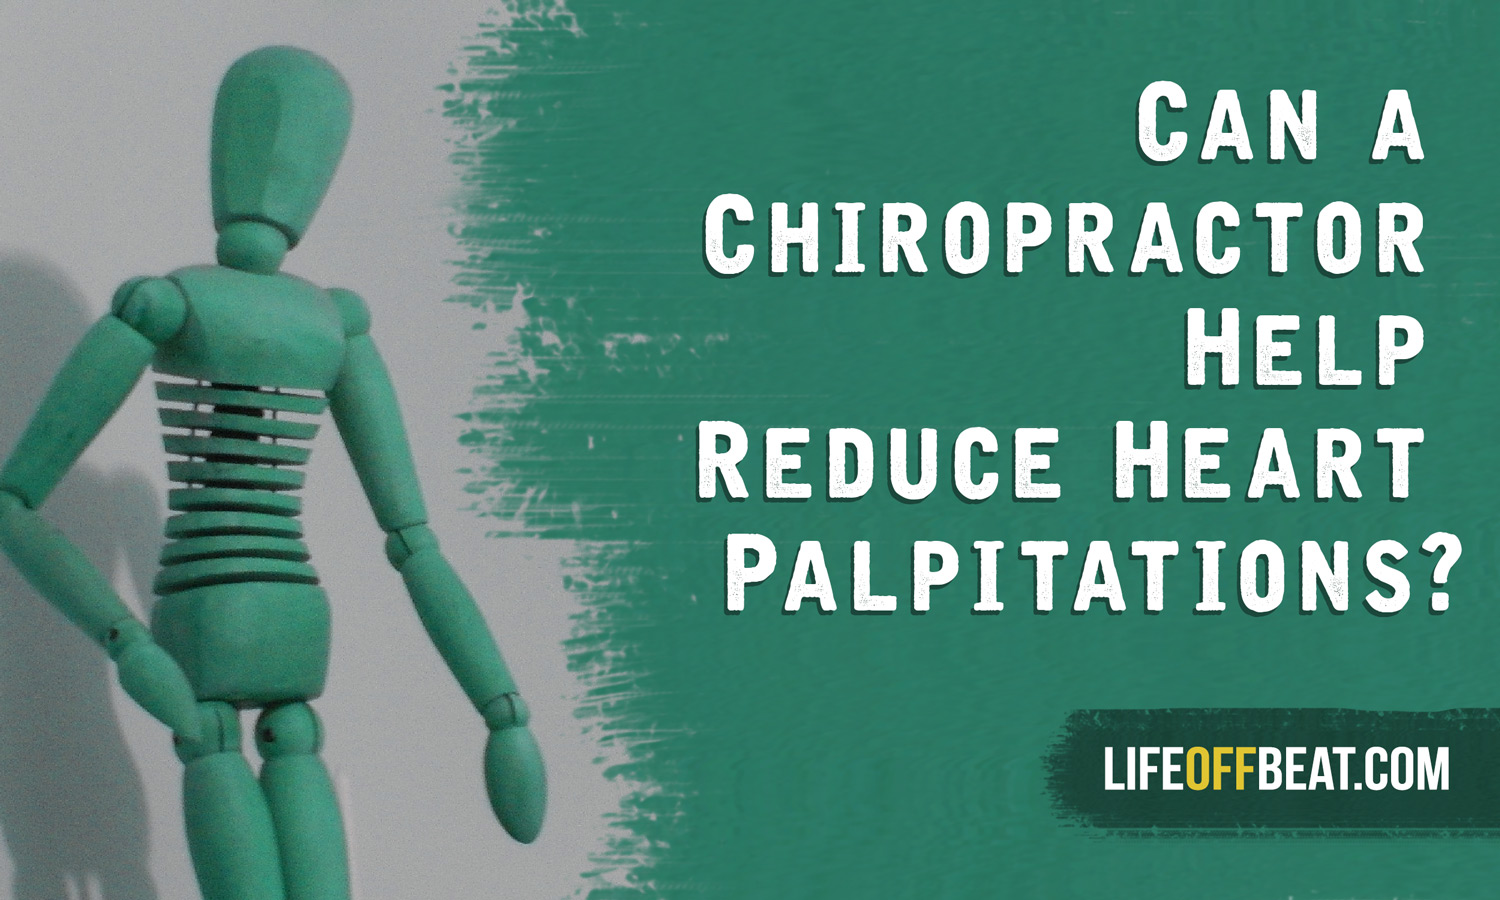 can a chiropractor help with spondylothesis Chiropractic is primarily used as a pain relief alternative for muscles, joints neck pain-other places to get help lumbar spinal stenosis-other places to get help.